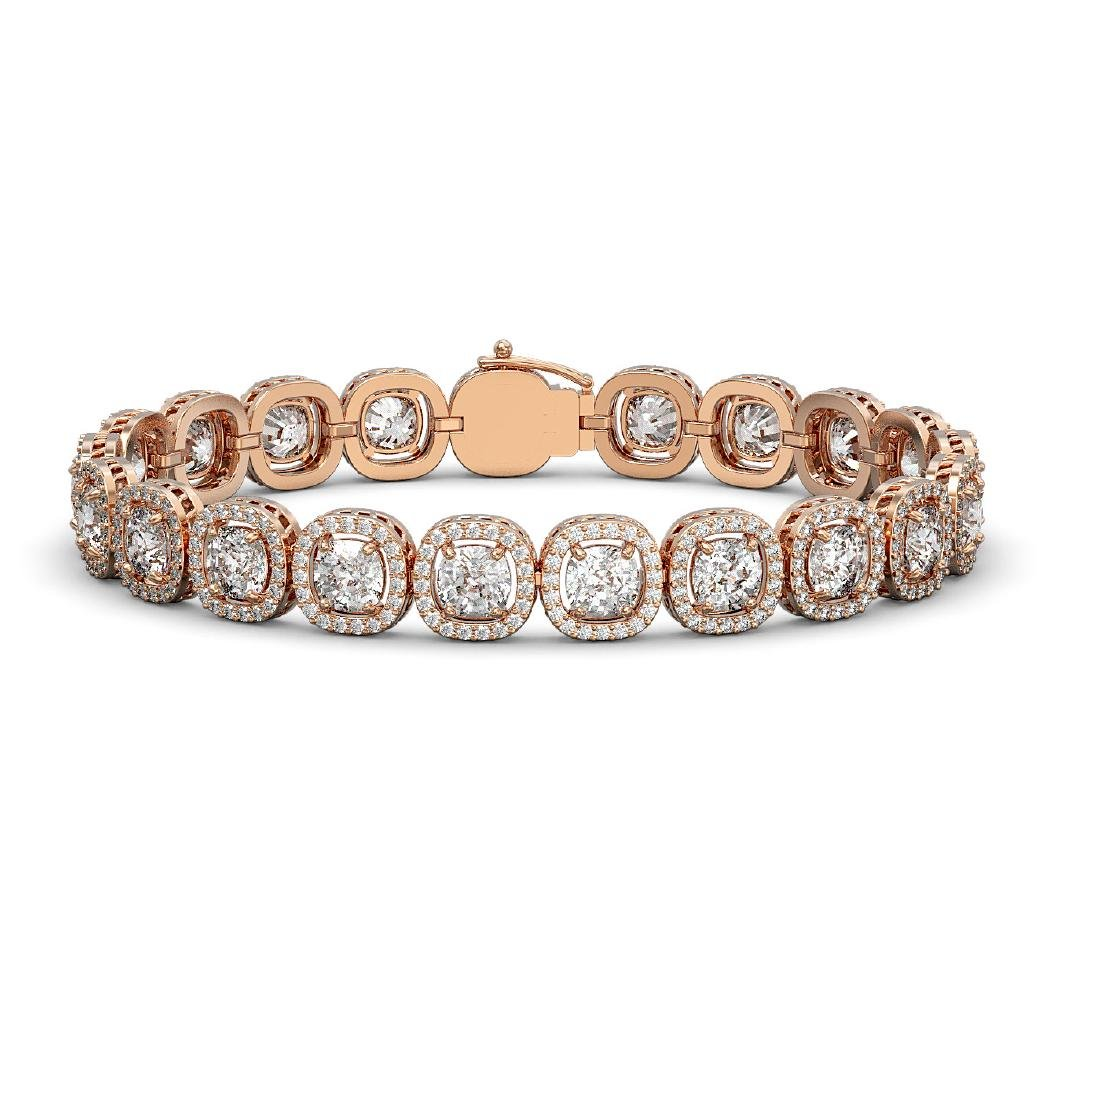 16.54 CTW Cushion Diamond Designer Bracelet 18K Rose